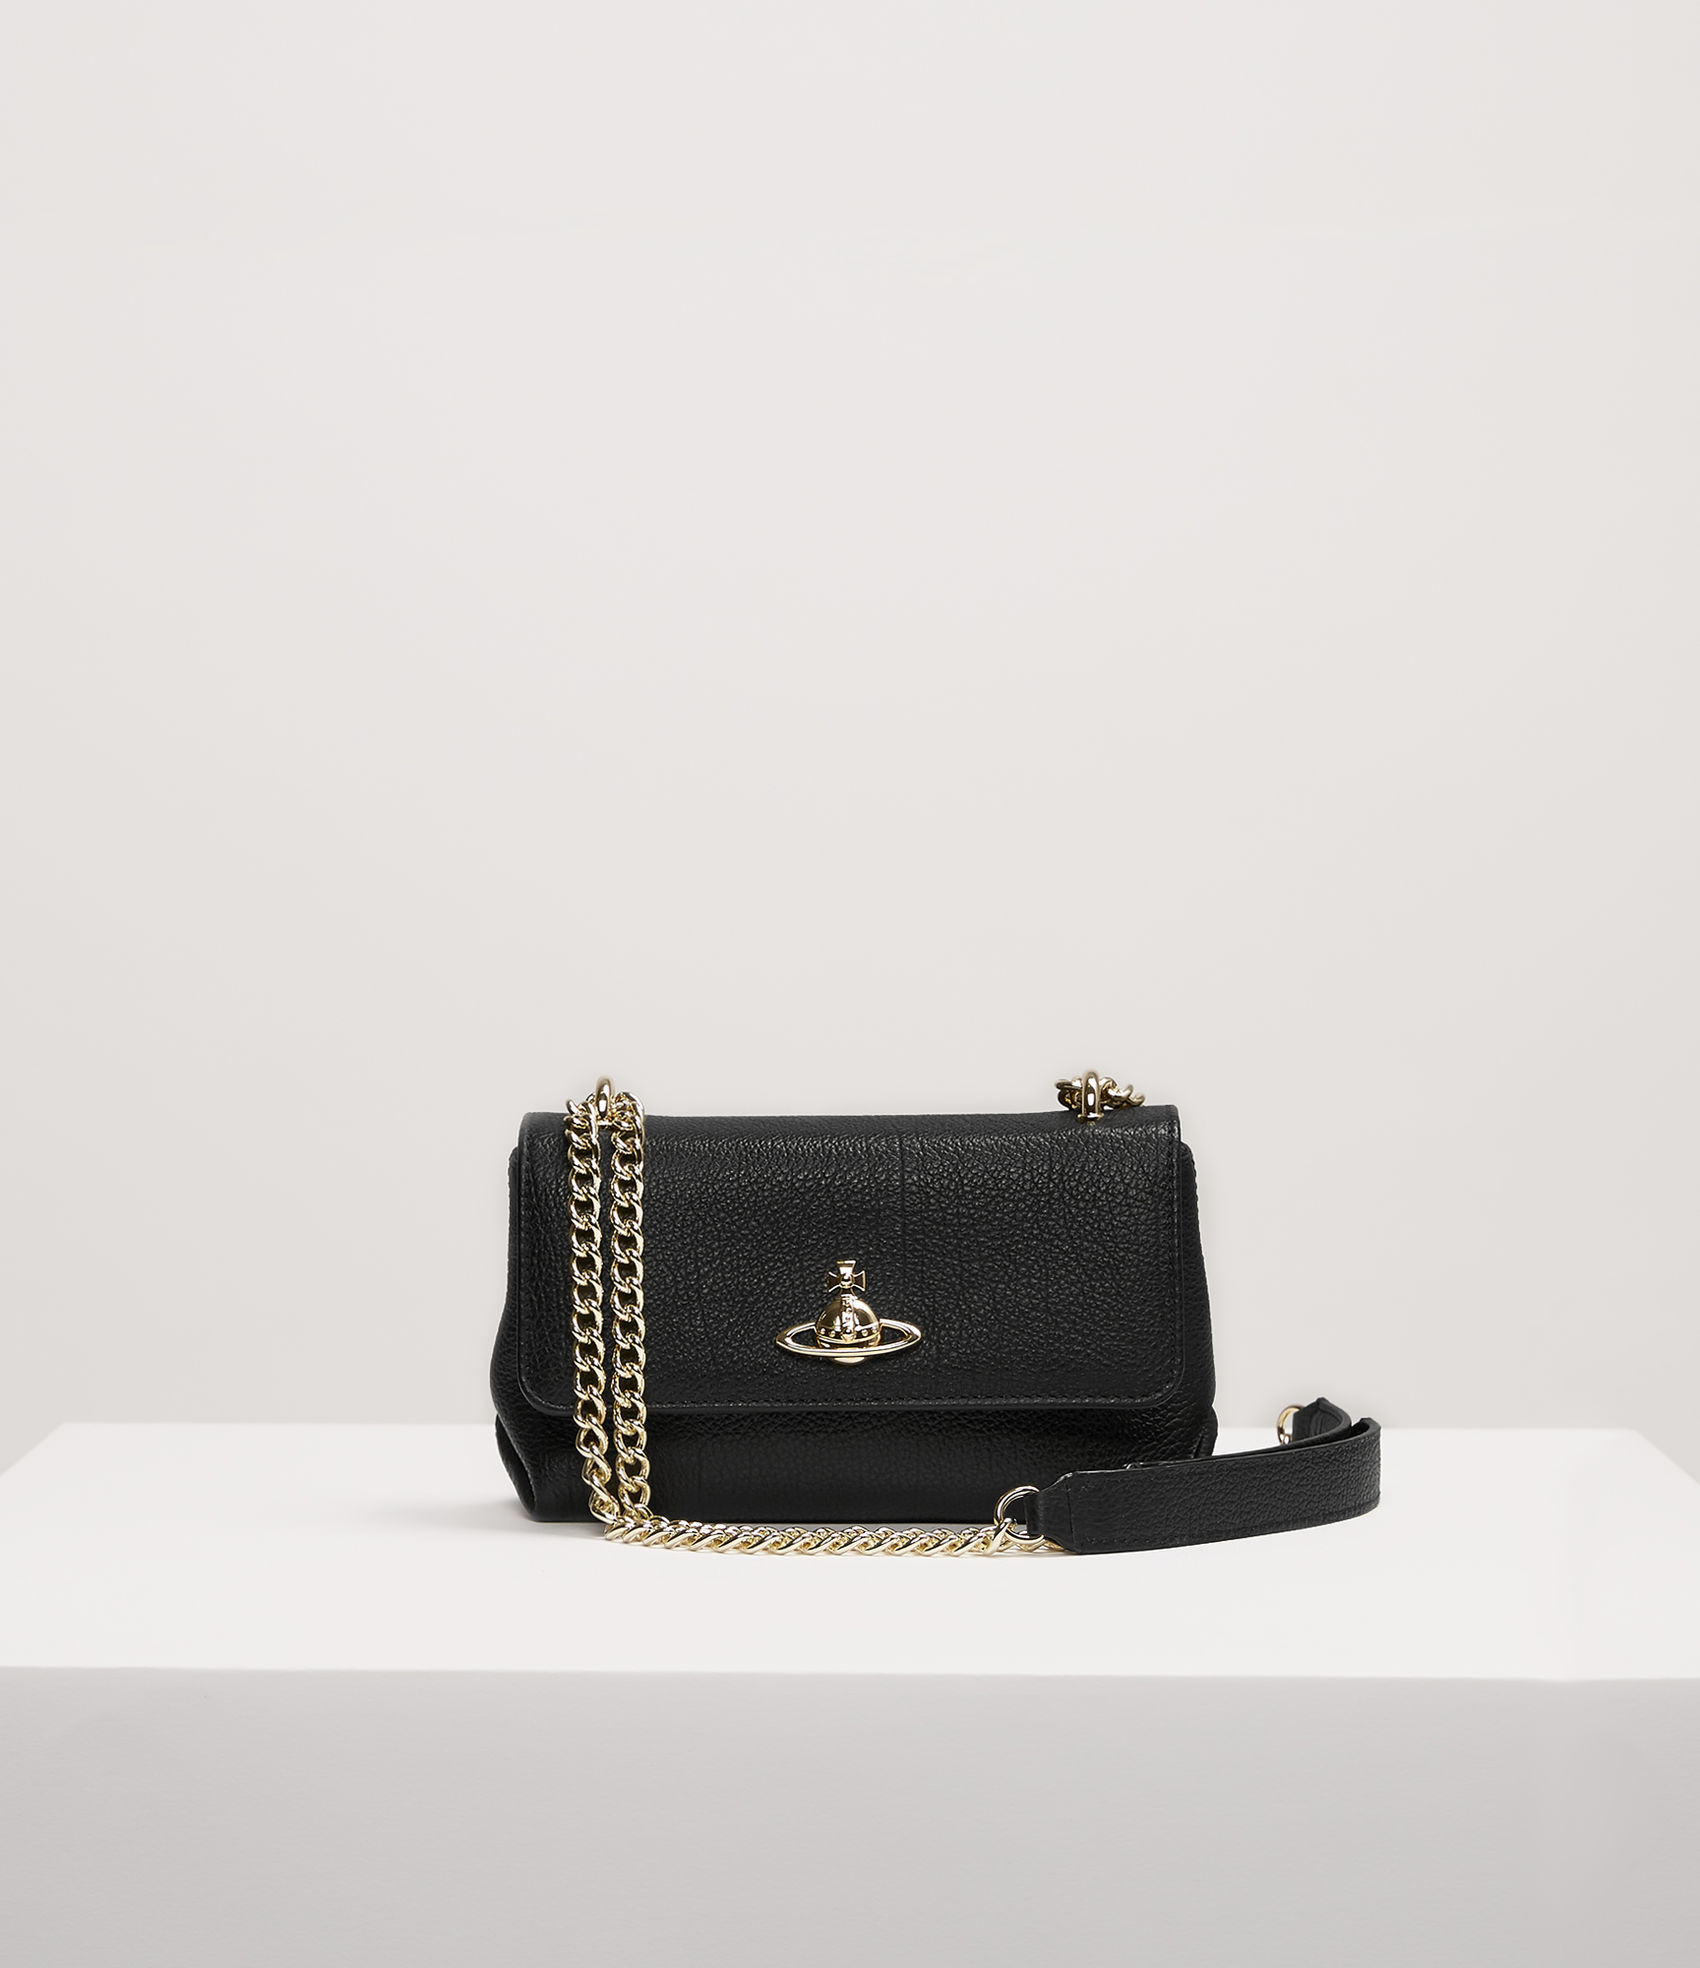 b324111941 Vivienne Westwood Balmoral Small Bag With Chain And Flap Black ...